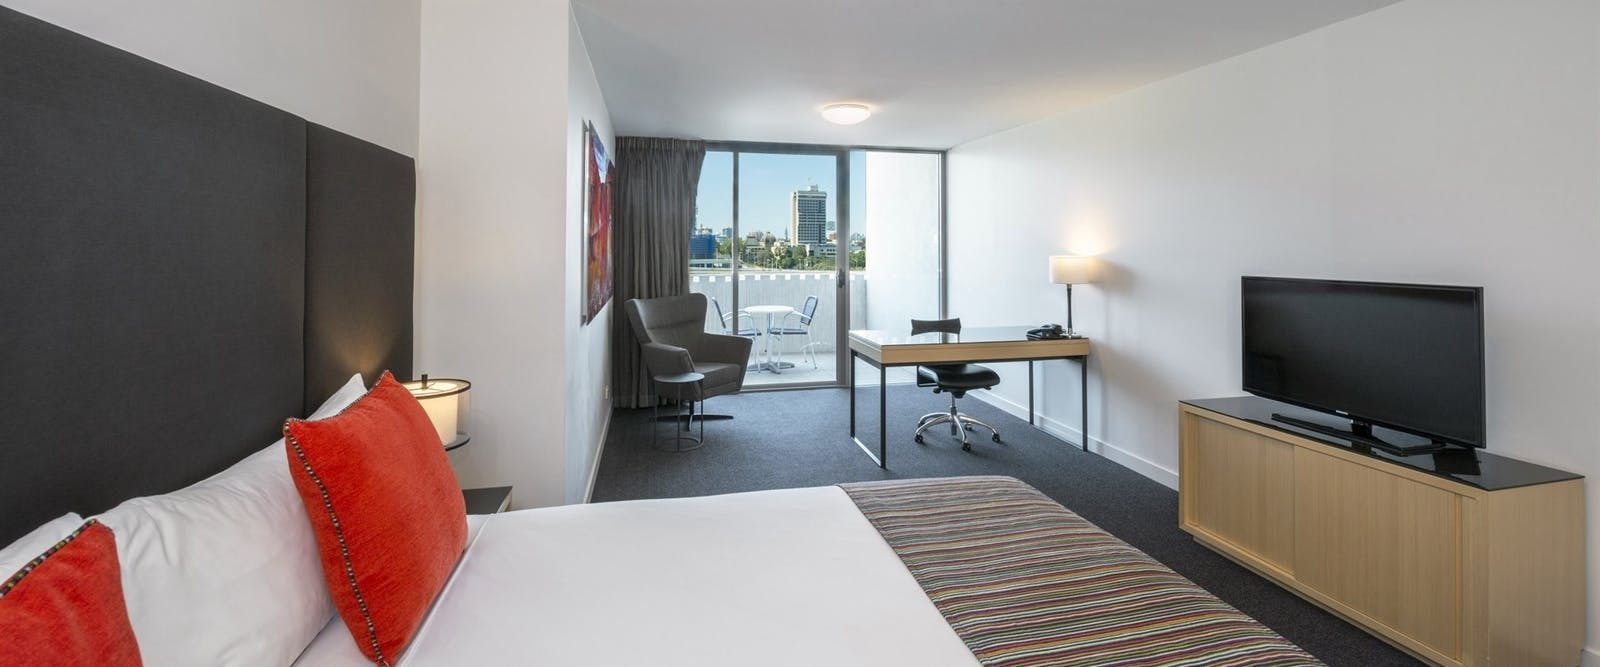 room with city view at Mantra Southbank Brisbane